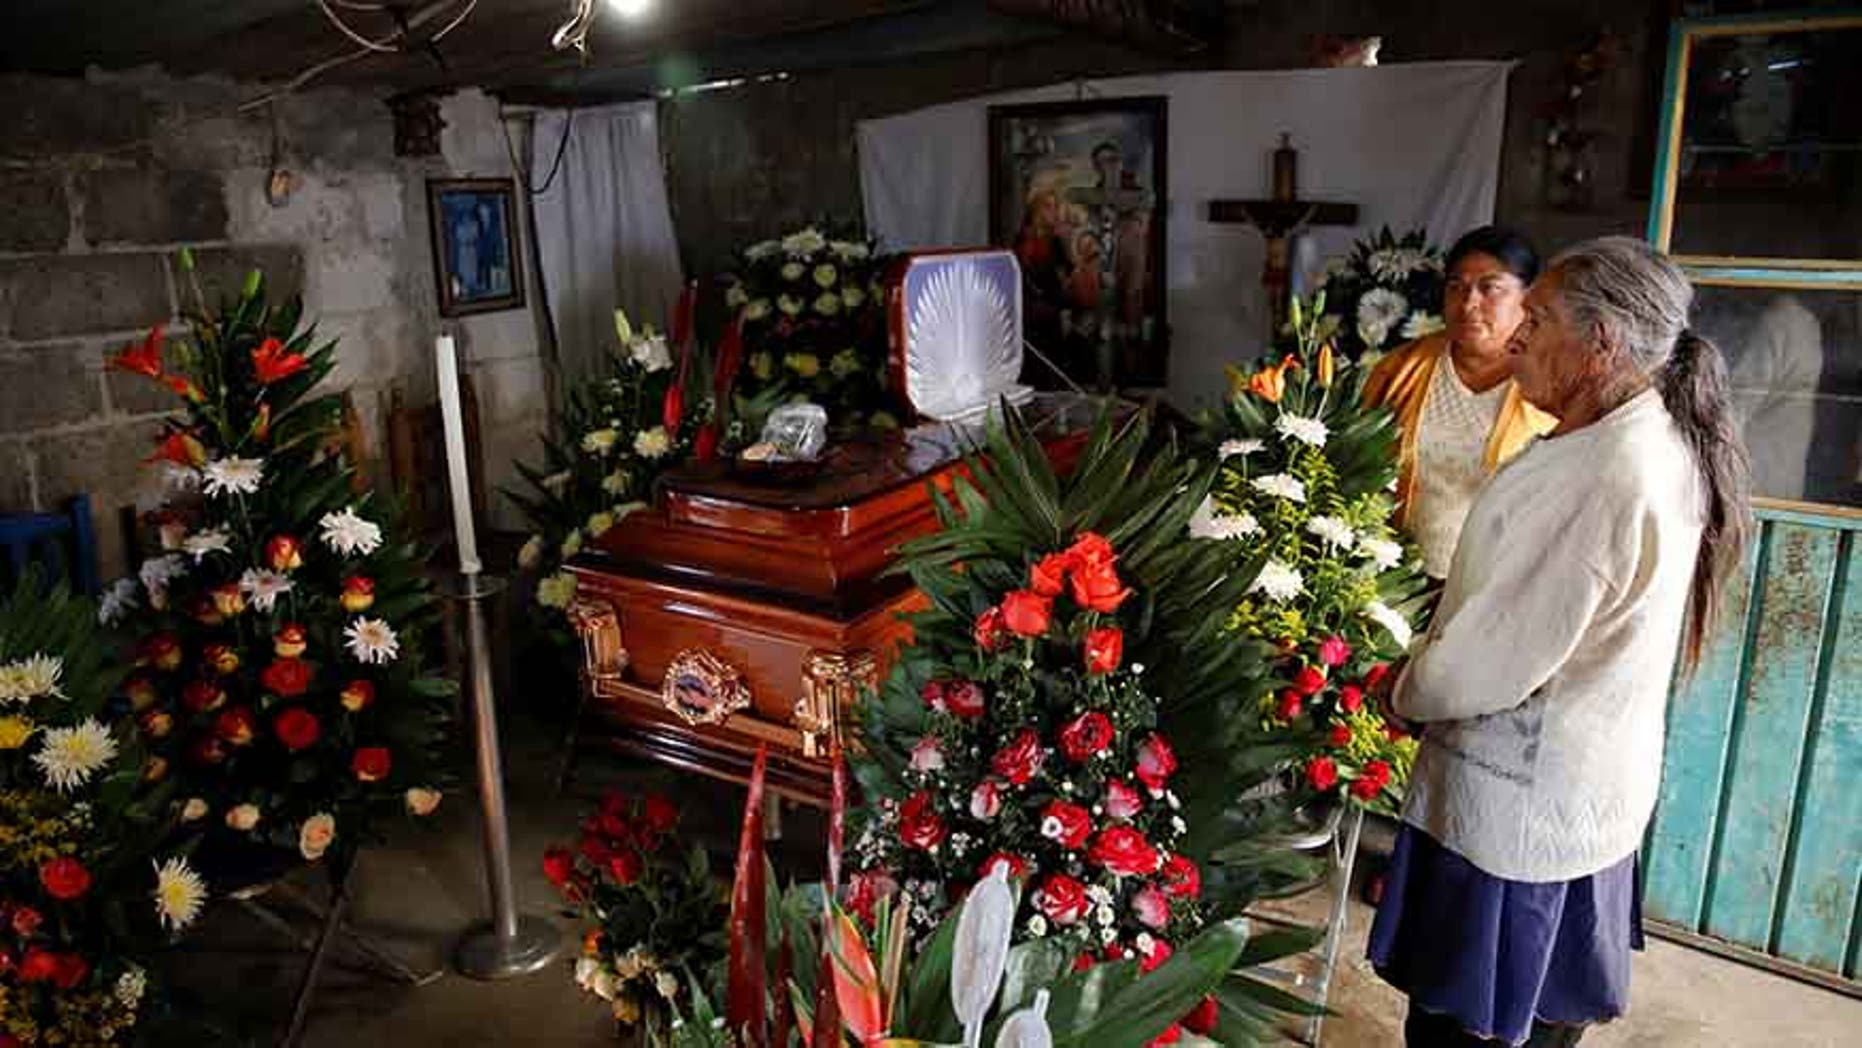 Drug-related violence in Mexico has caused more fatalities than wars in Iraq and Afghanistan.